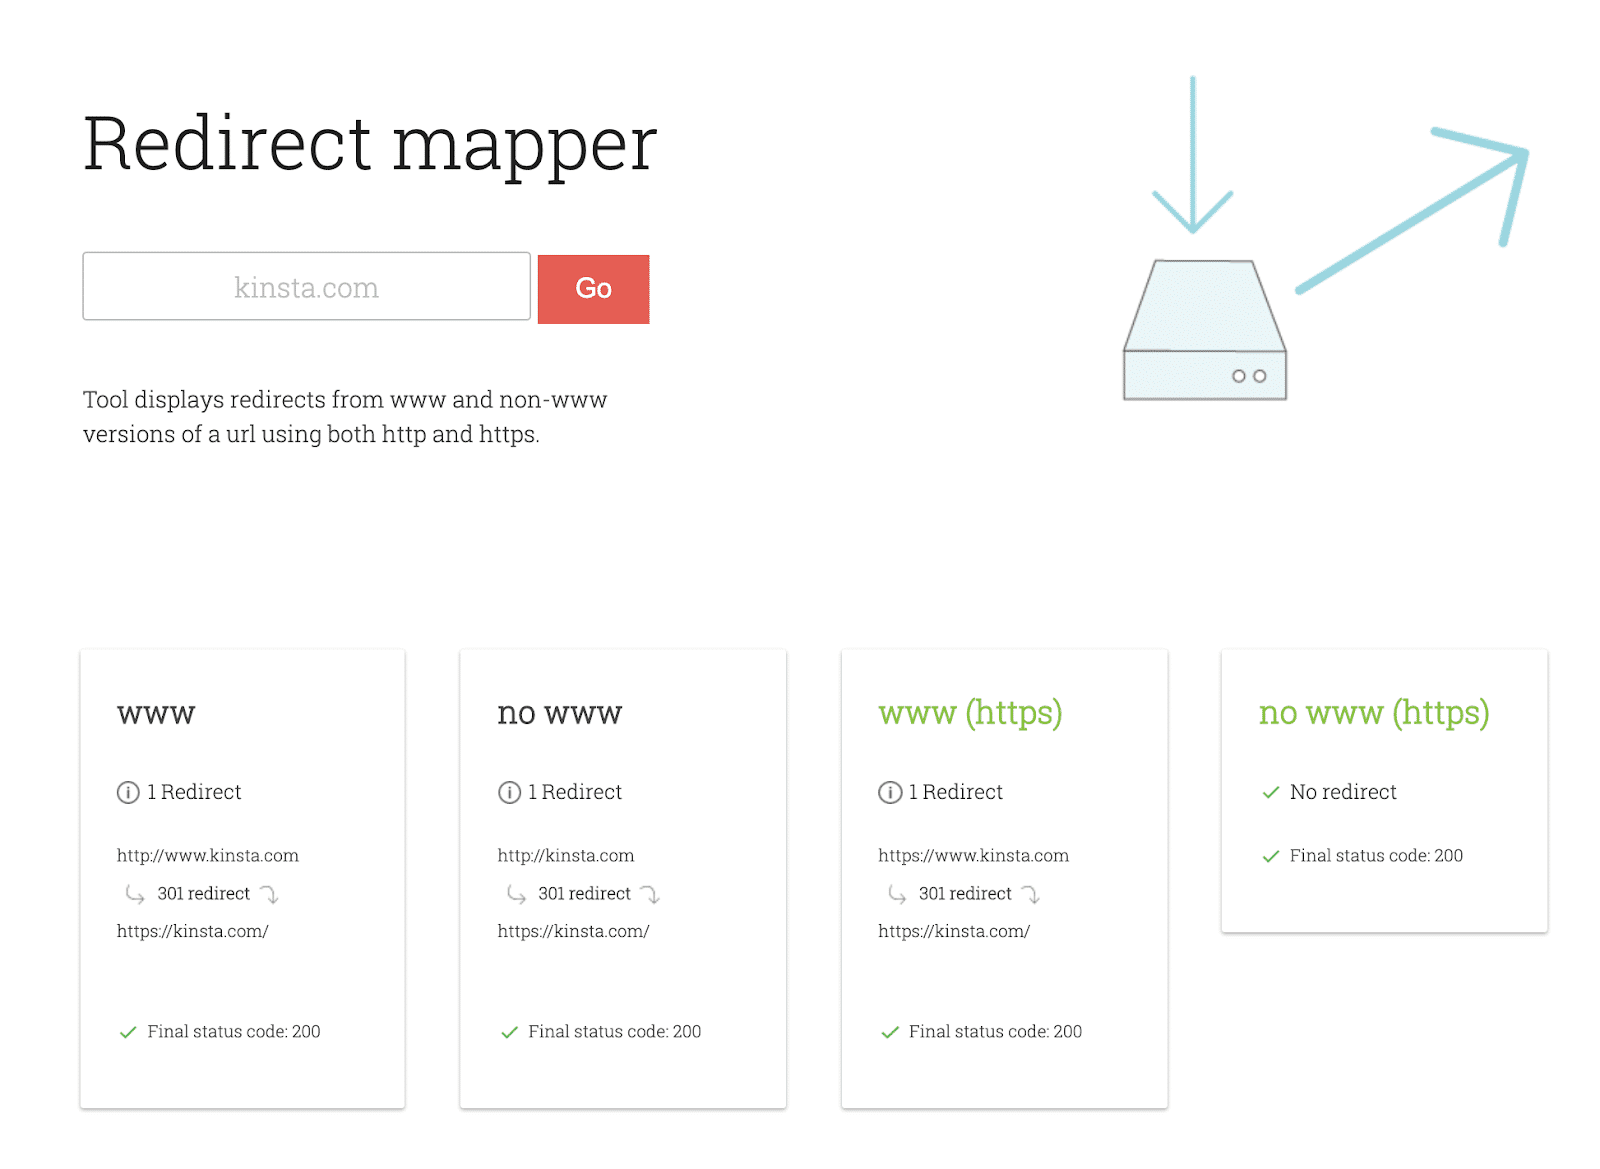 Das Redirect Mapper Tool